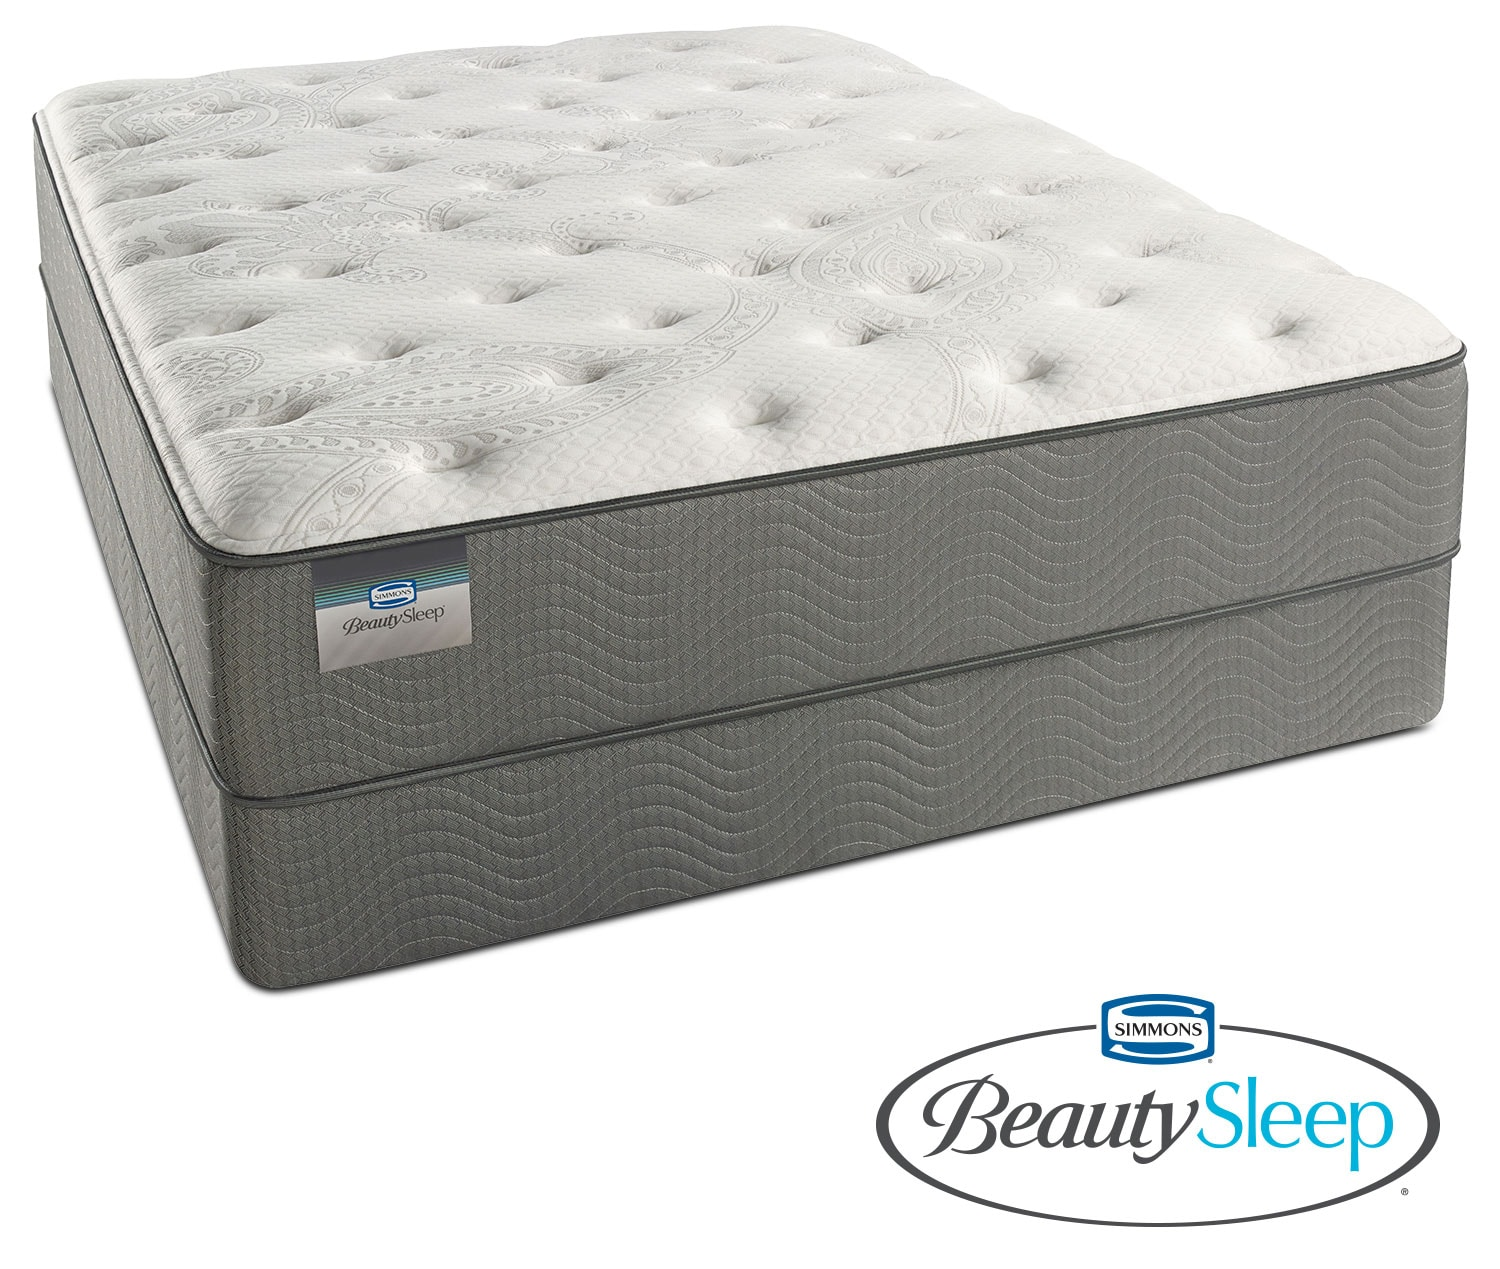 Mattresses and Bedding - Stags Leap Luxury Firm Queen Mattress and Low-Profile Foundation Set